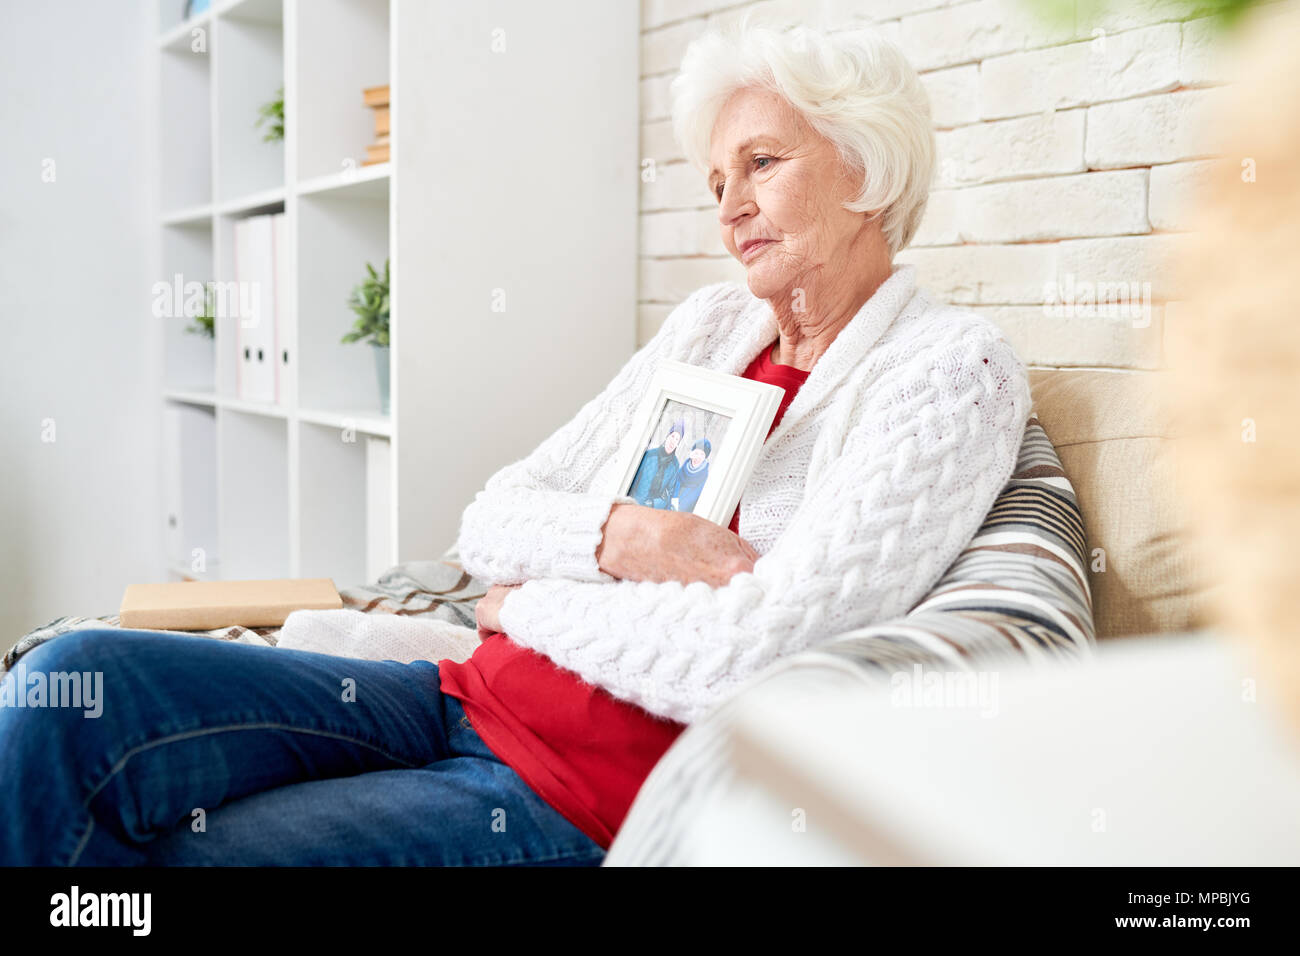 Sad Senior Woman Remembering Husband - Stock Image